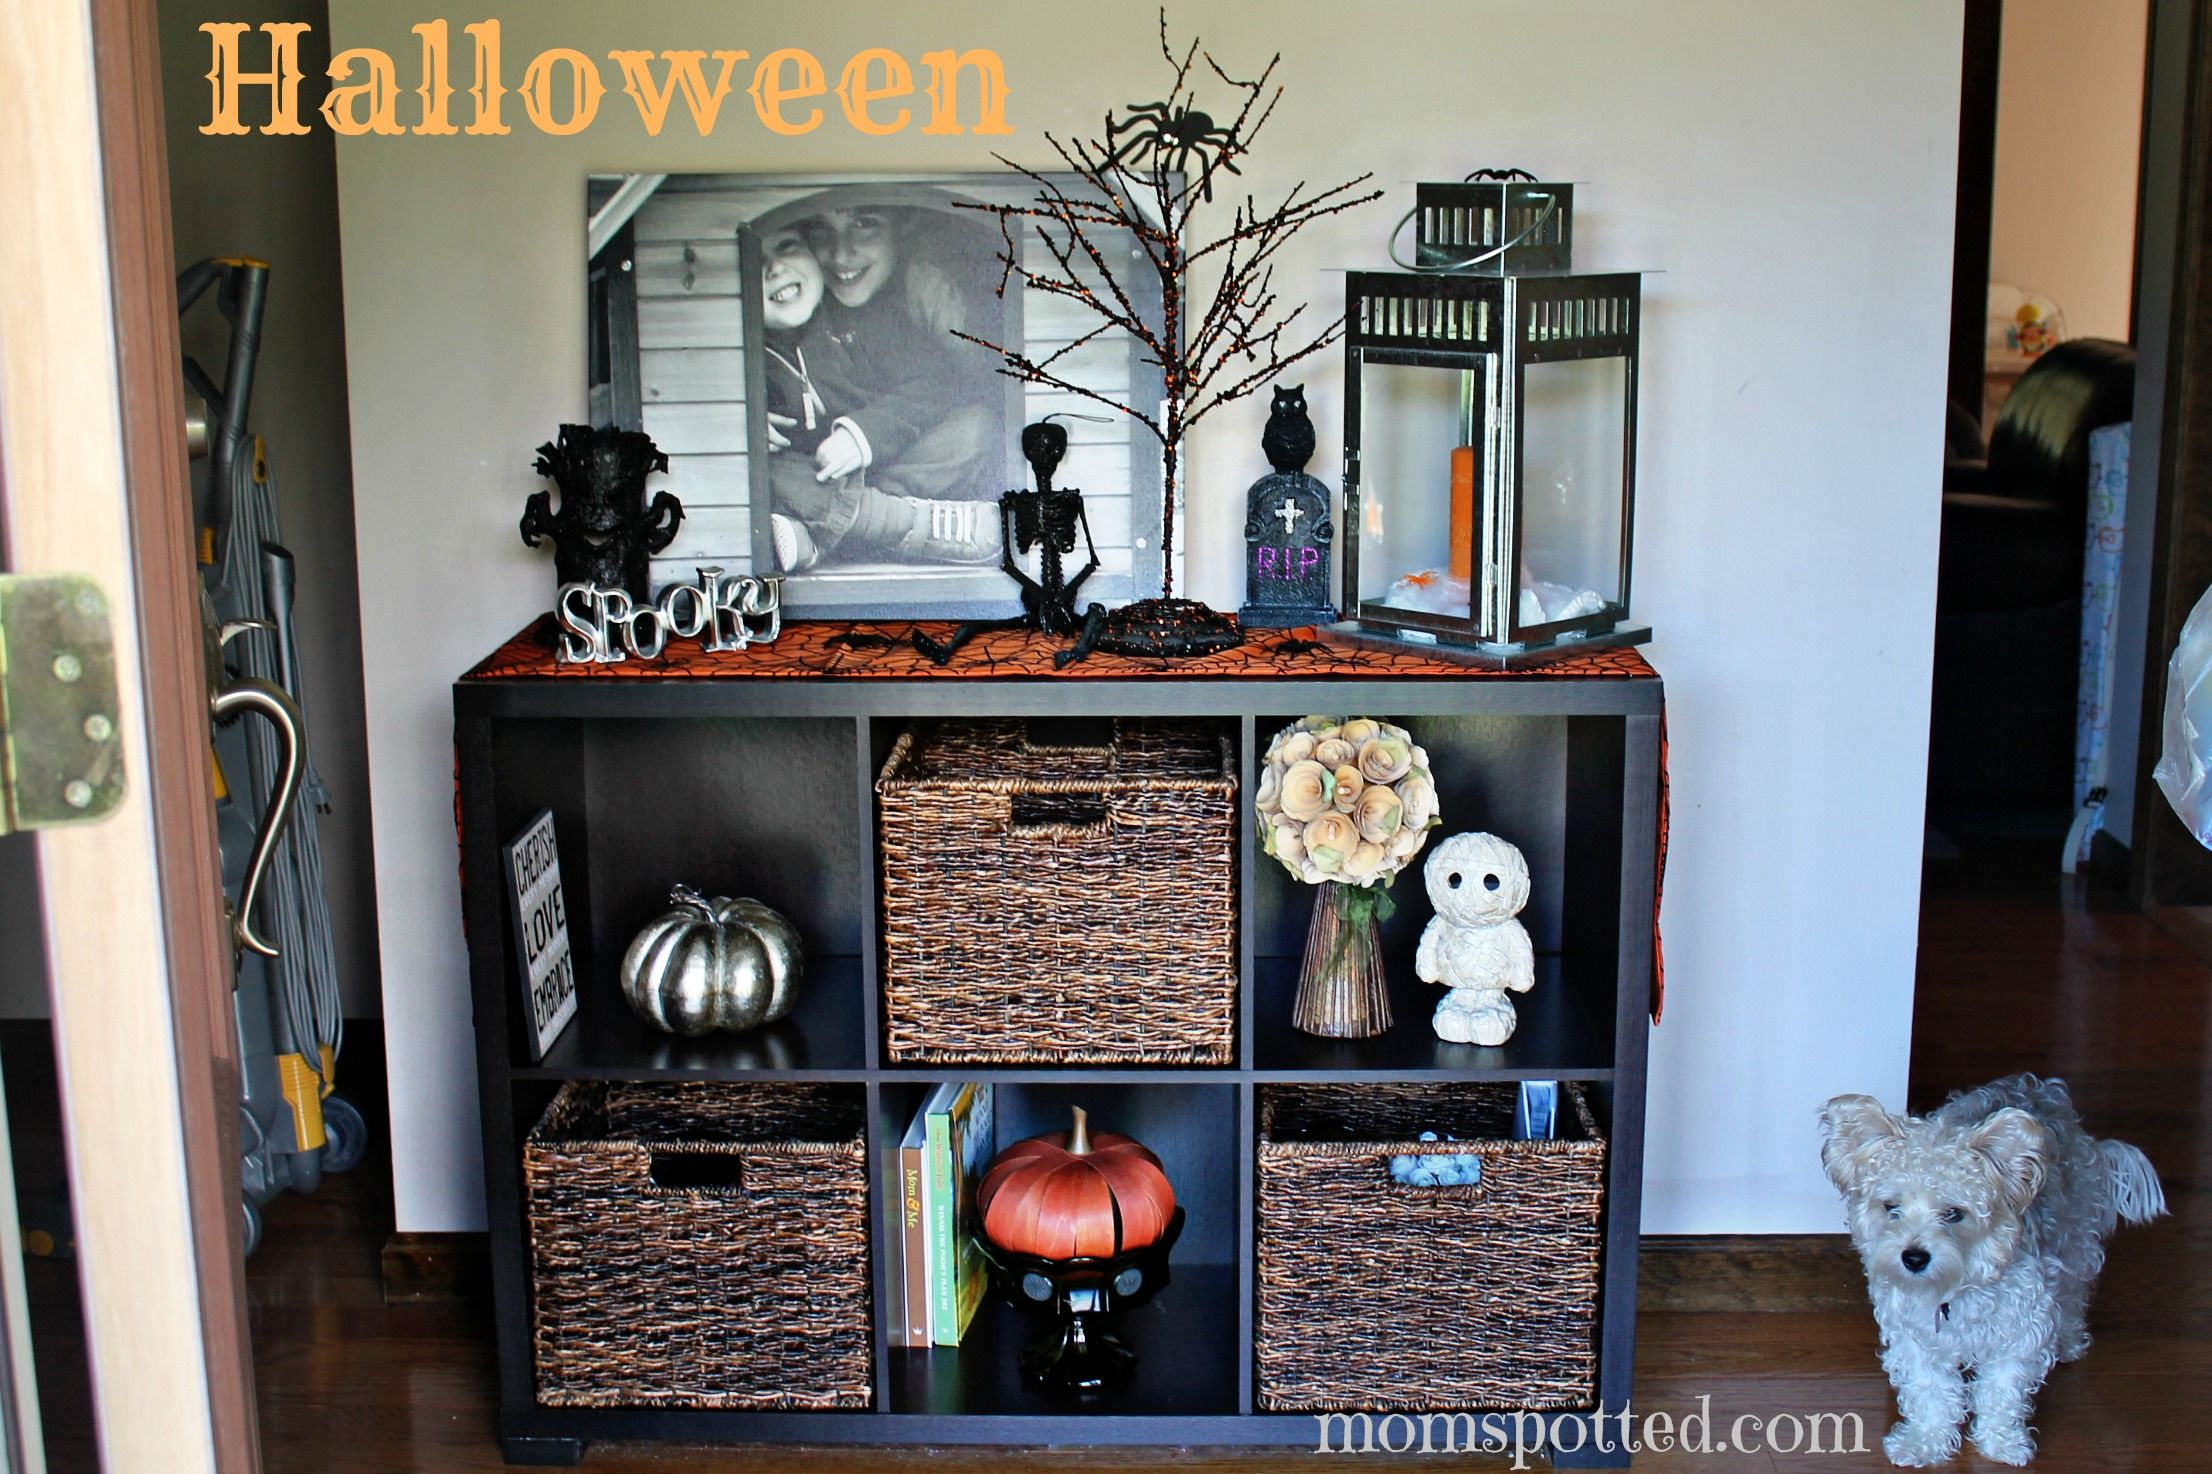 Pin by Kim McGowan on Halloween Pinterest Autumn